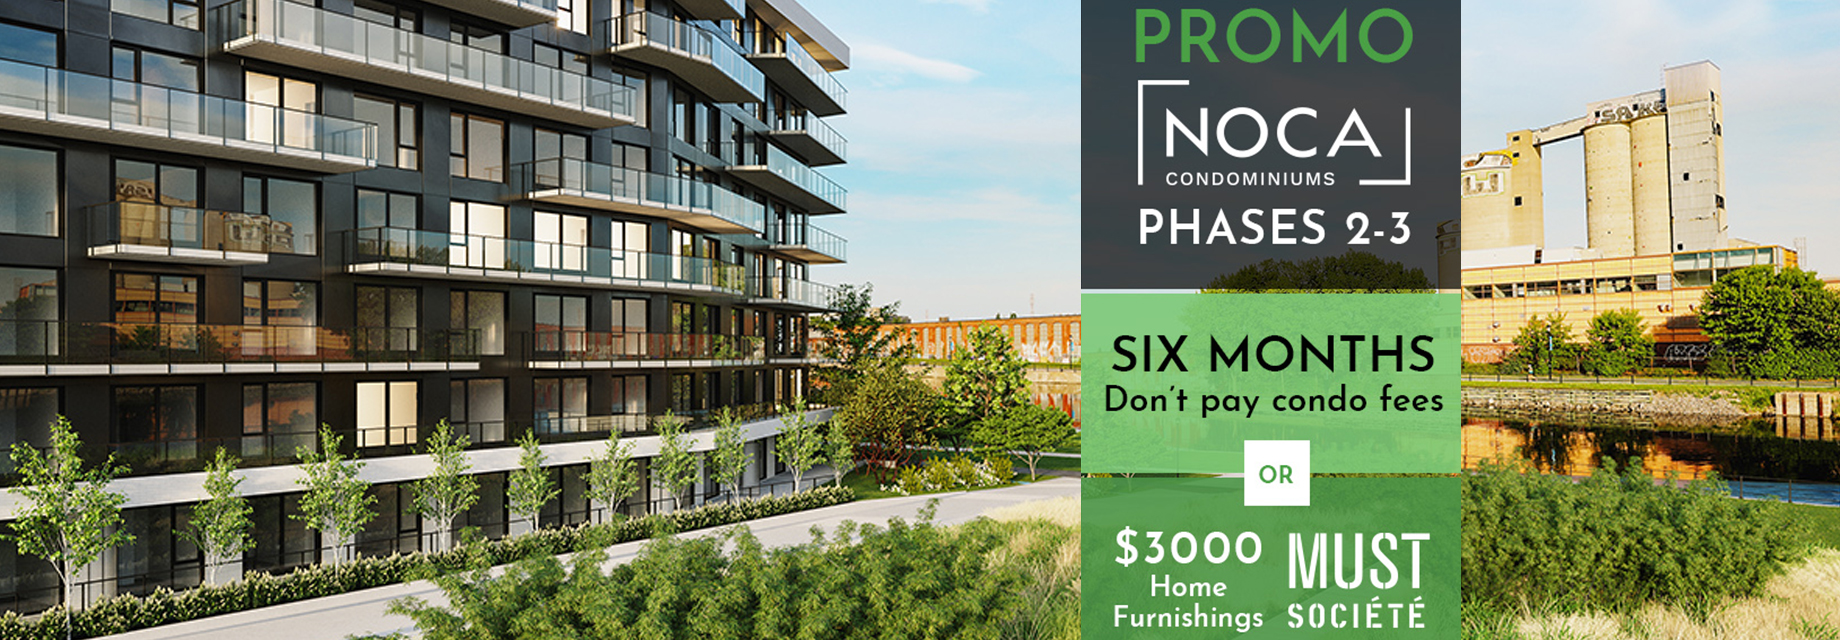 Noca condos six months don't pay condo fees or $3000 at MUST société